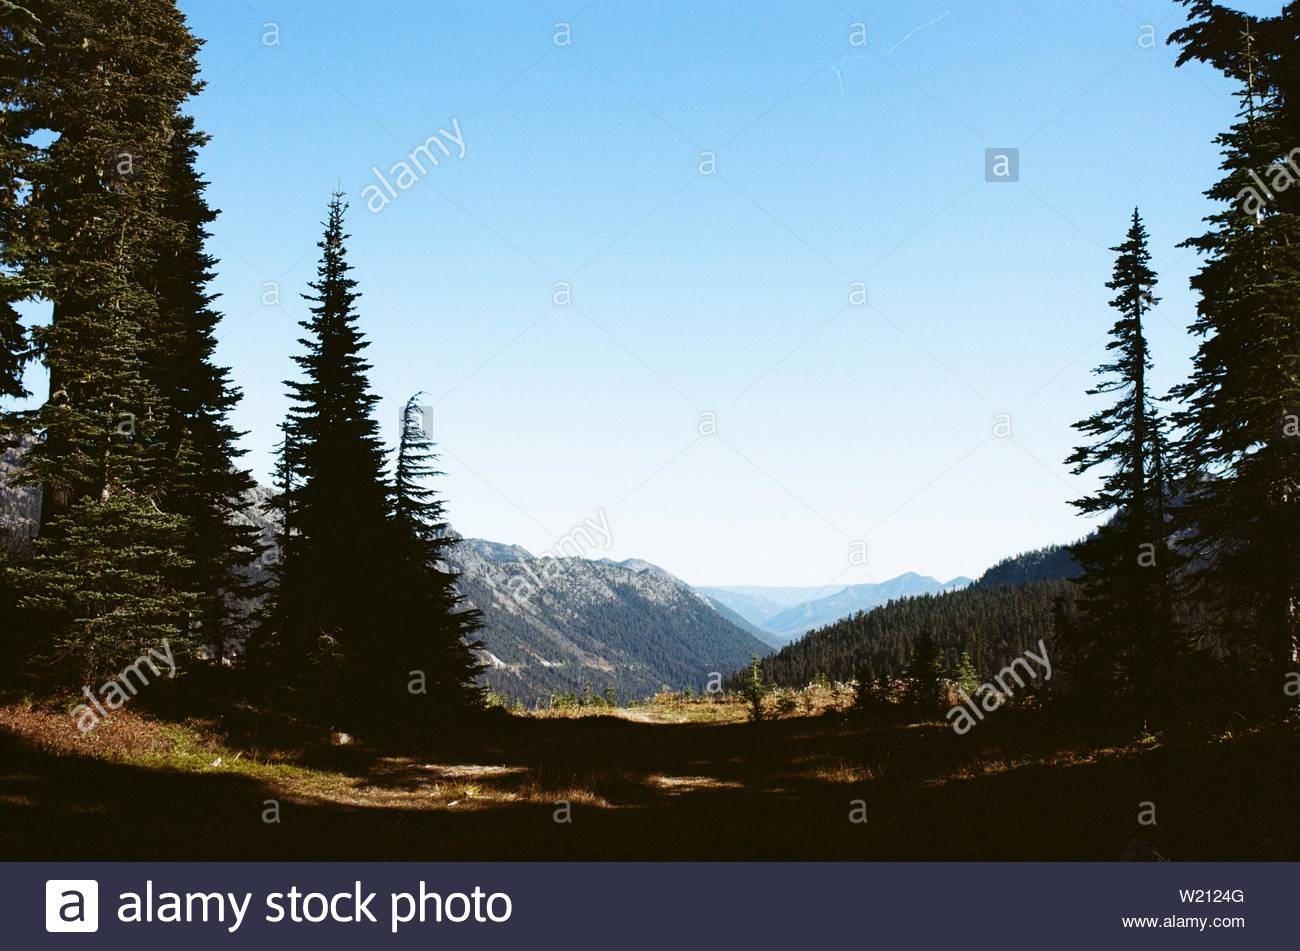 Large pine trees reach toward the sky in front of distant mountains . - Stock Image